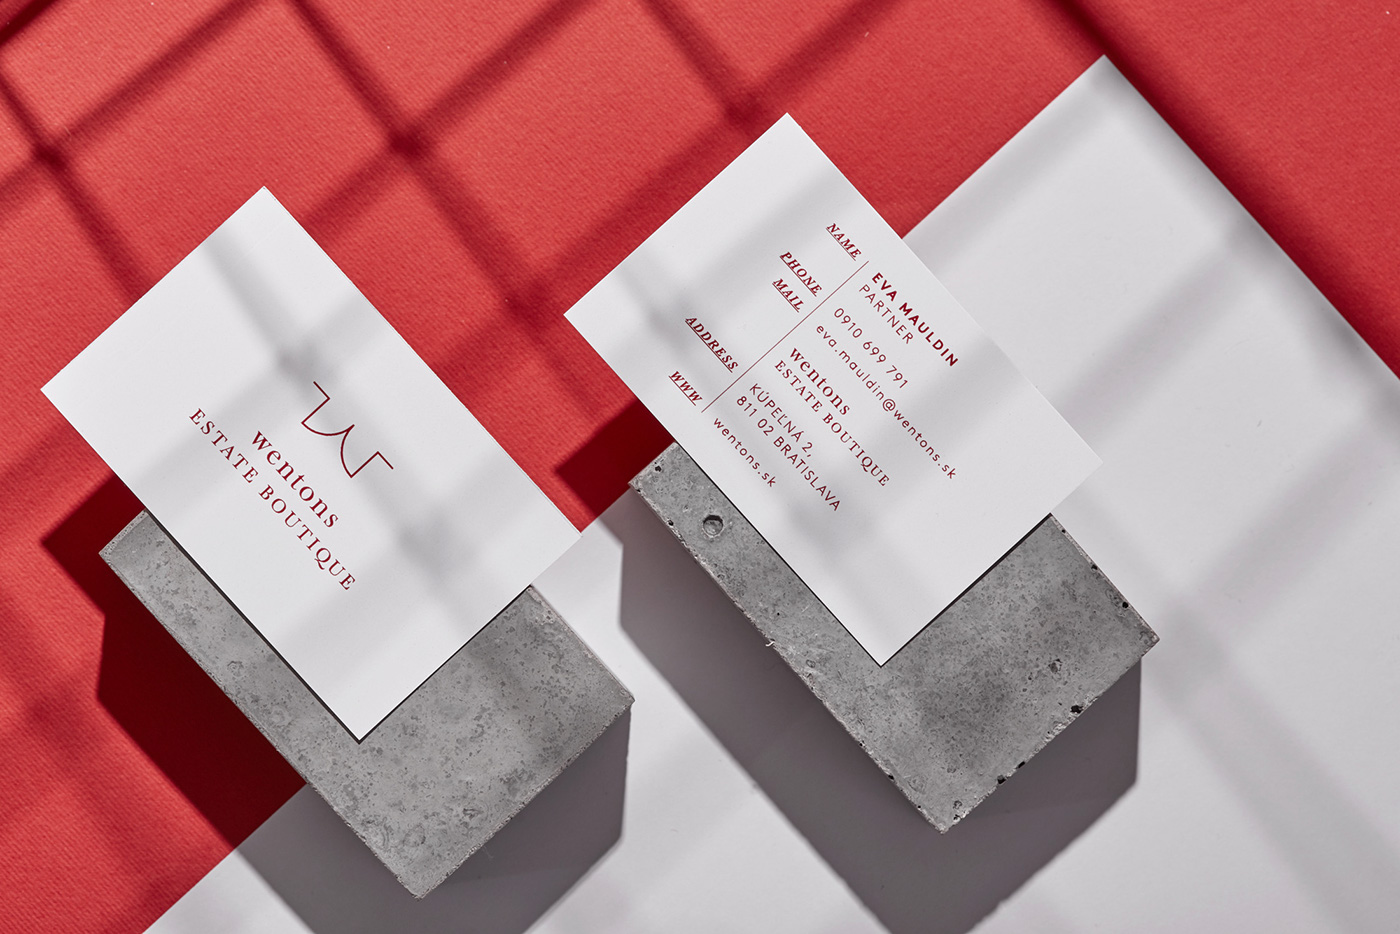 Every property has a number just like every Wentons branding material is characterized by a unique number (reference date...) which is slightly bigger and ... & Good design makes me happy: Wentons Brand Identity by Kiosk Studio